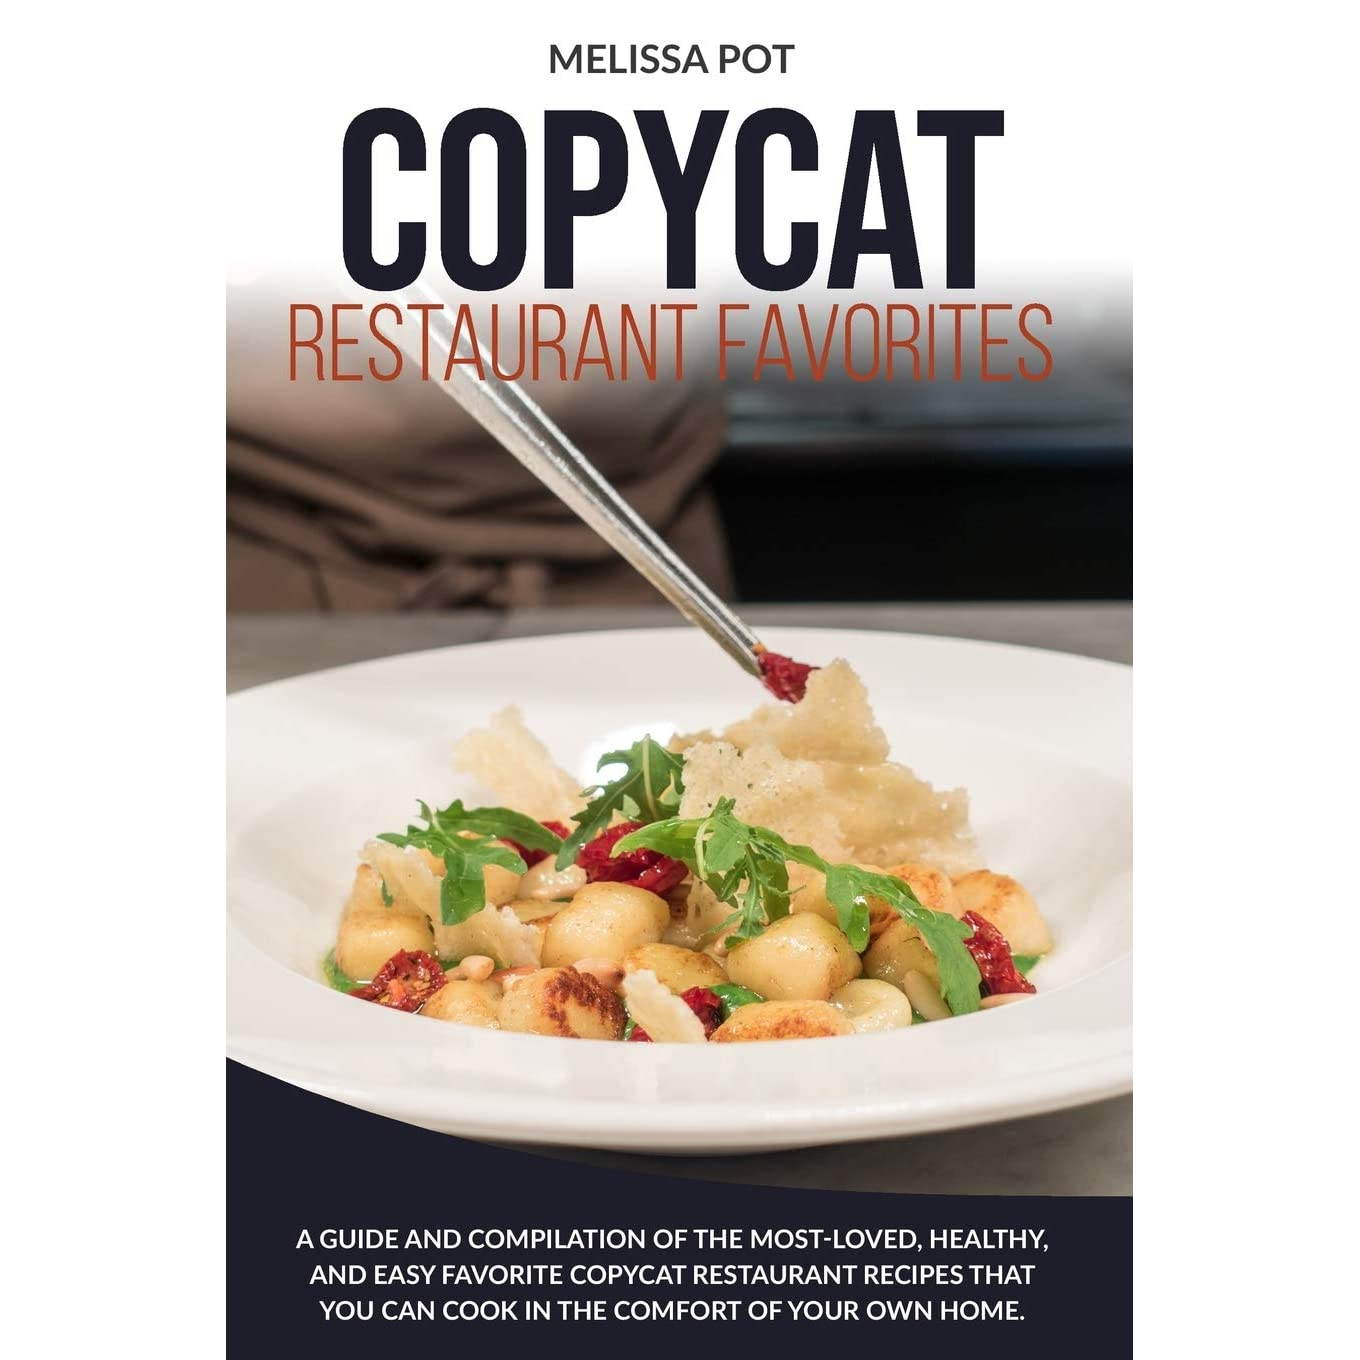 Copycat Restaurant Favorites A Guide And Compilation Of The Most Loved Healthy And Easy Favorite Copycat Restaurant Recipes That You Can Cook In The Comfort Of Your Own Home By Melissa Pot